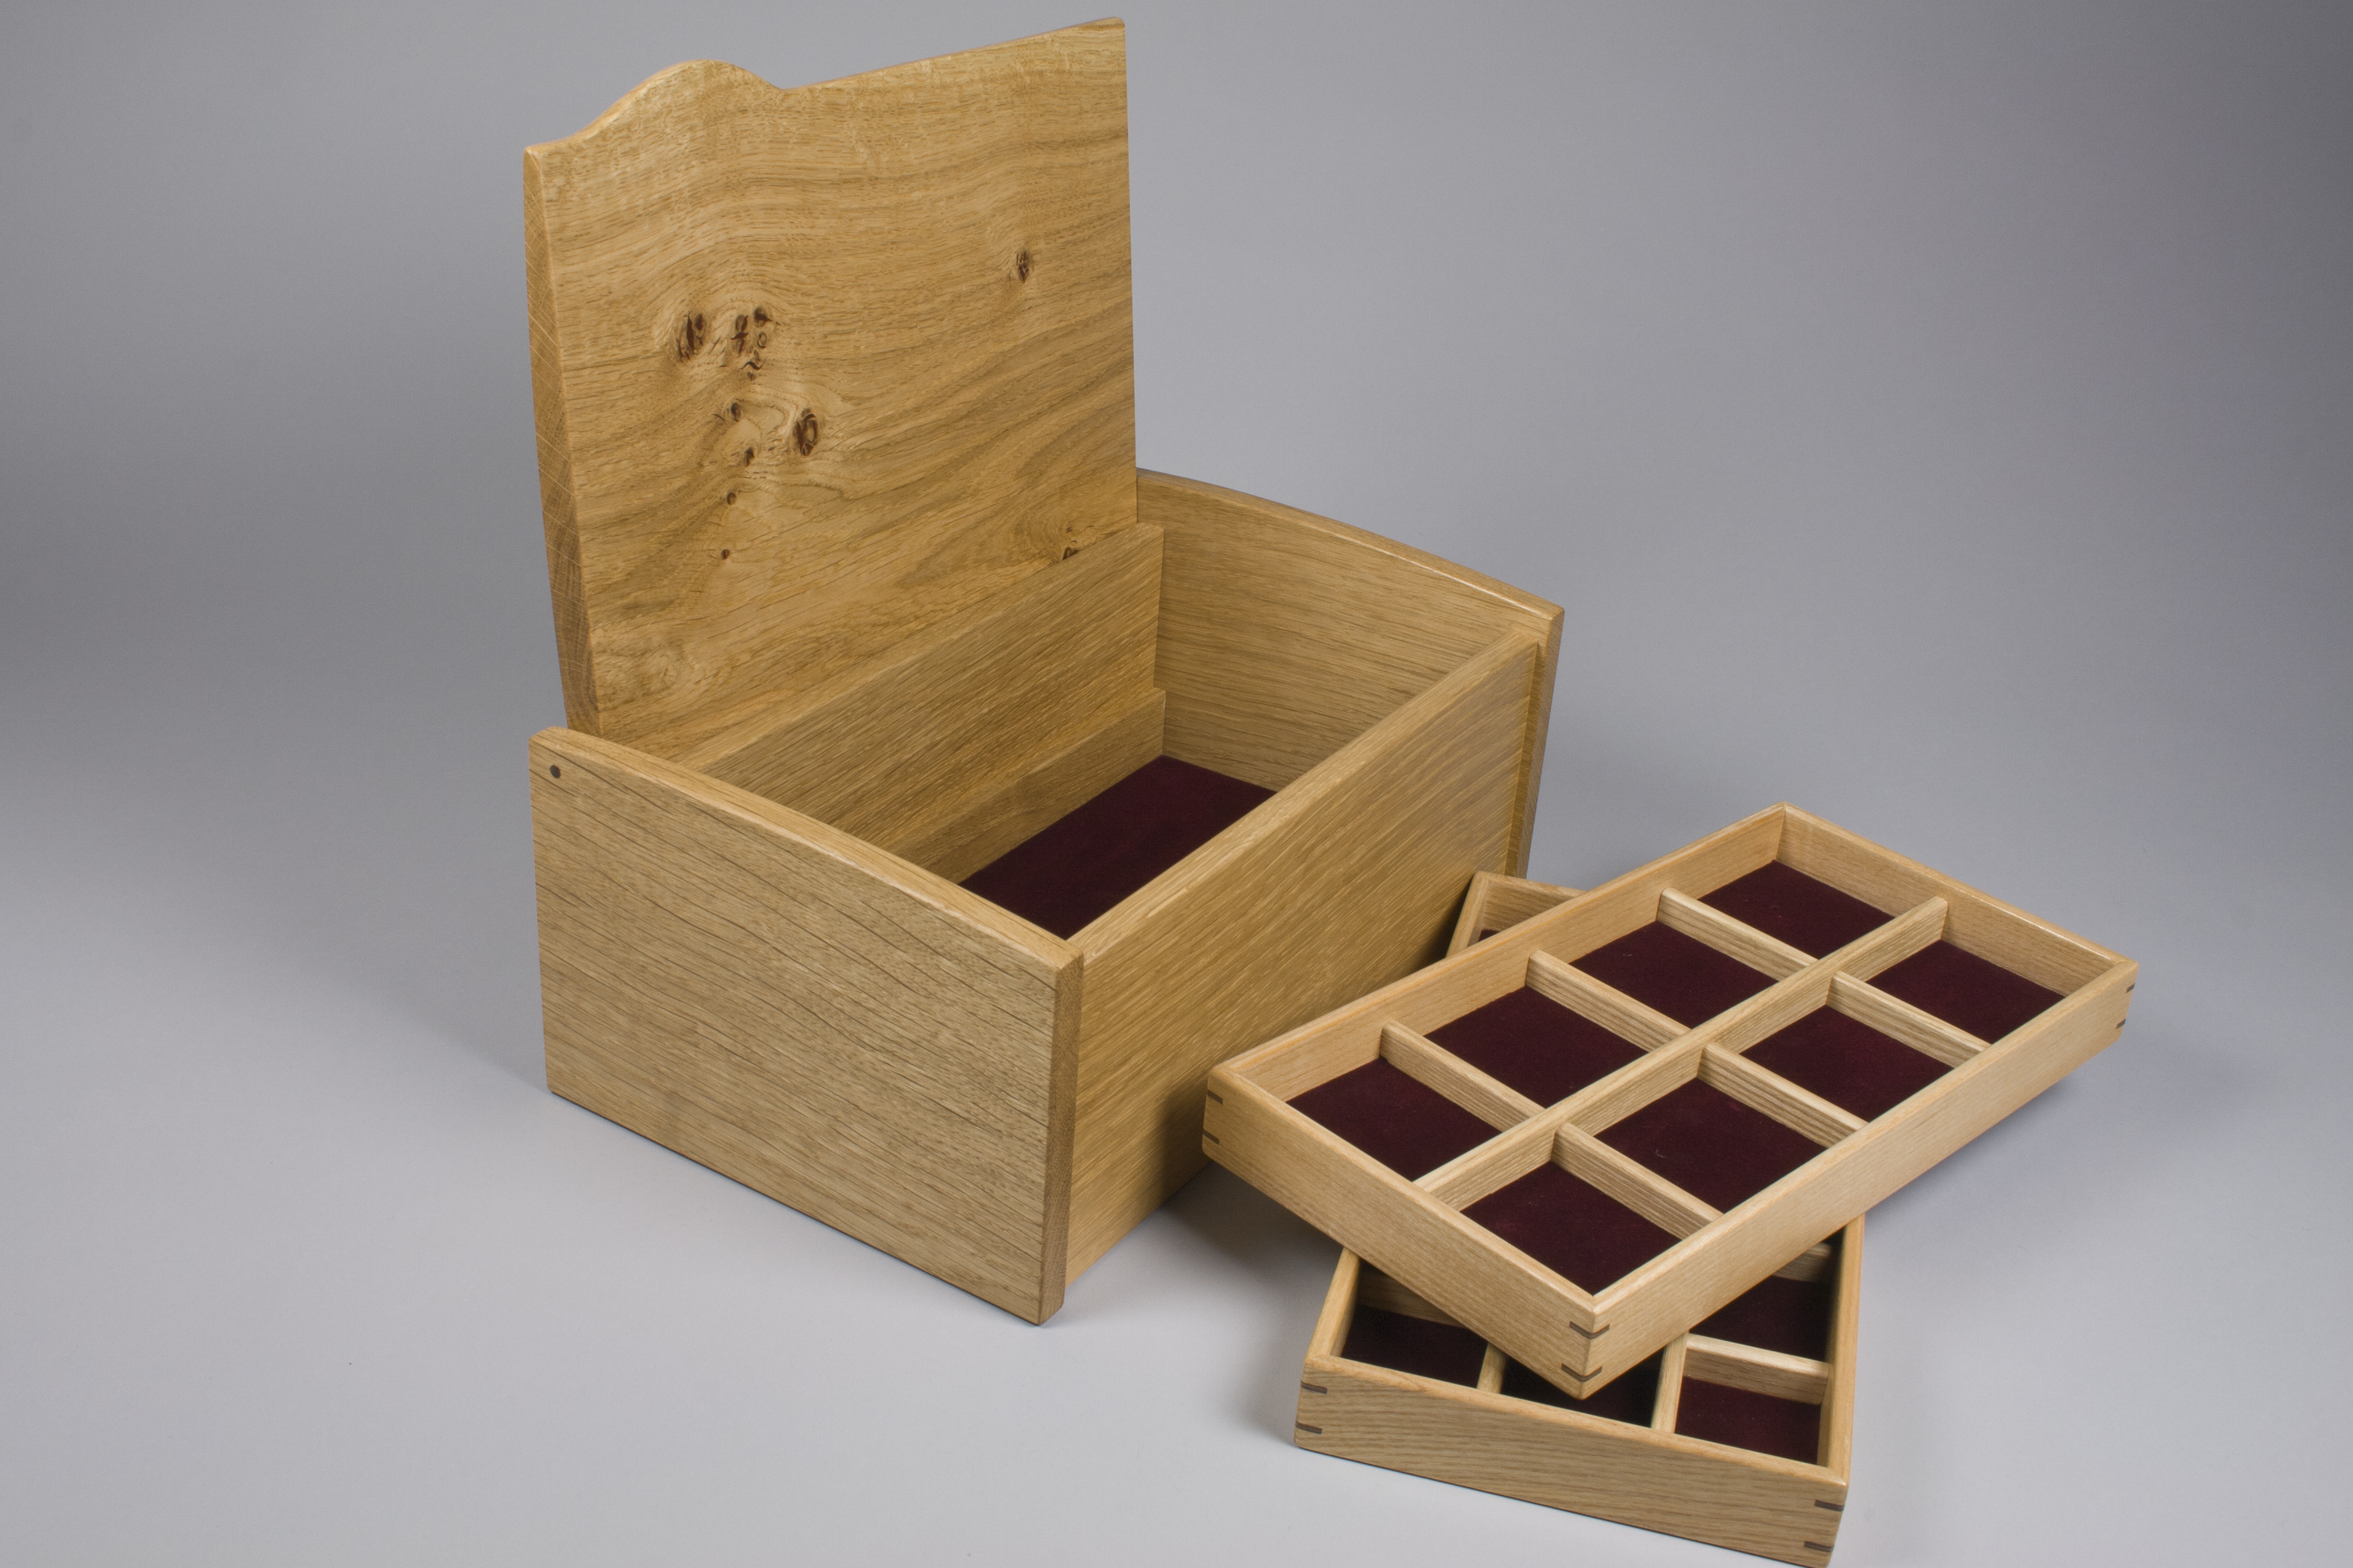 The jewellery box and trays